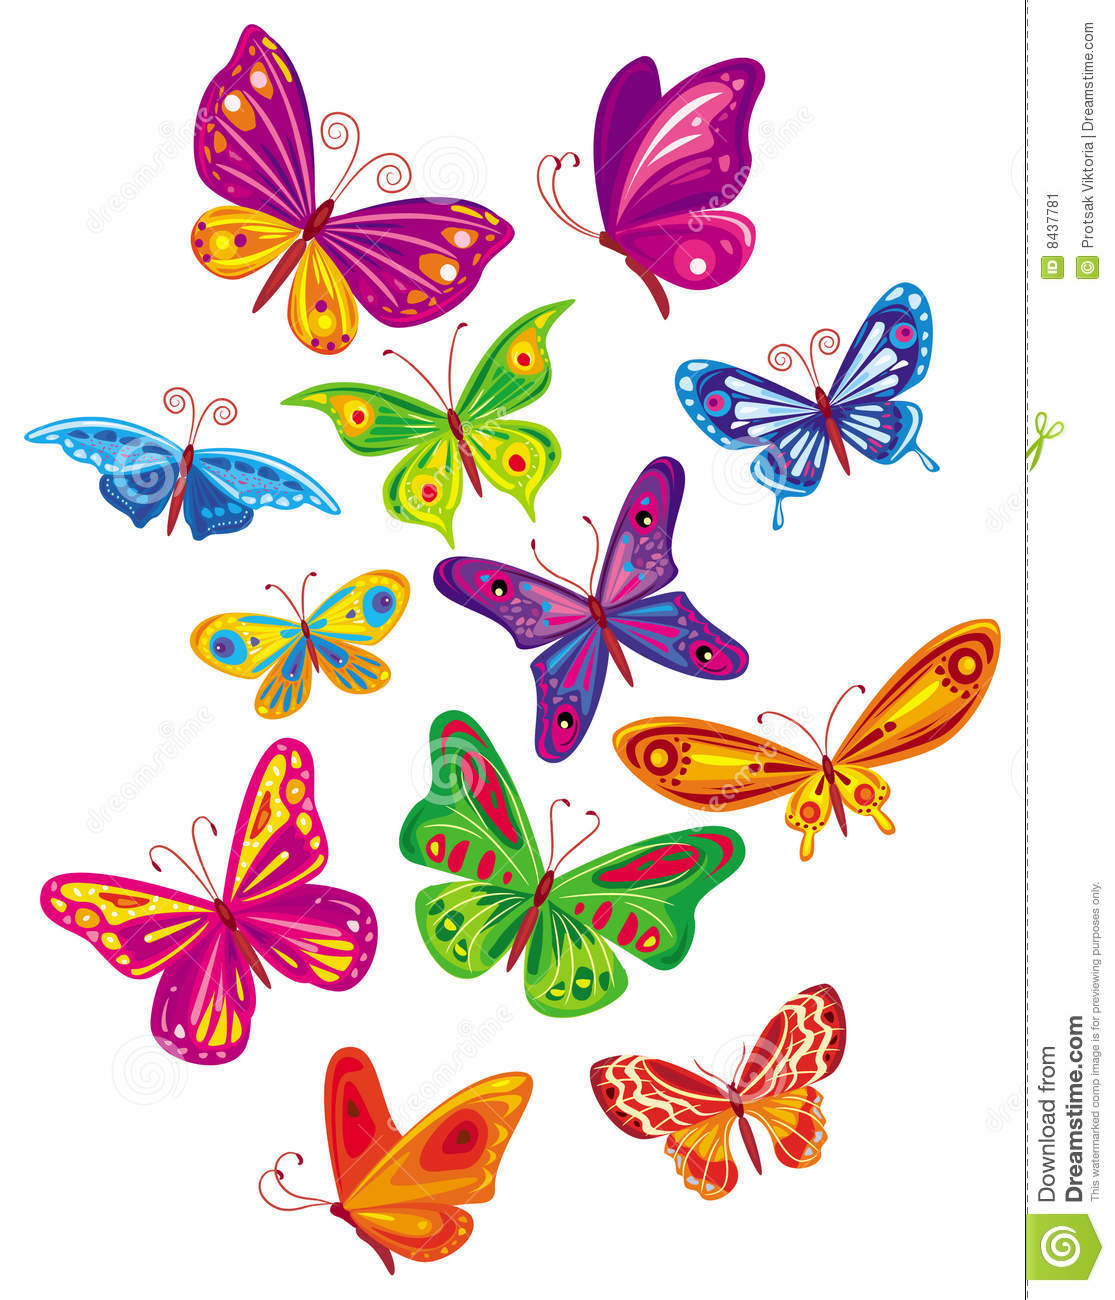 Colorful Butterflies Clipart on Stock Illustration Fish Silhouette